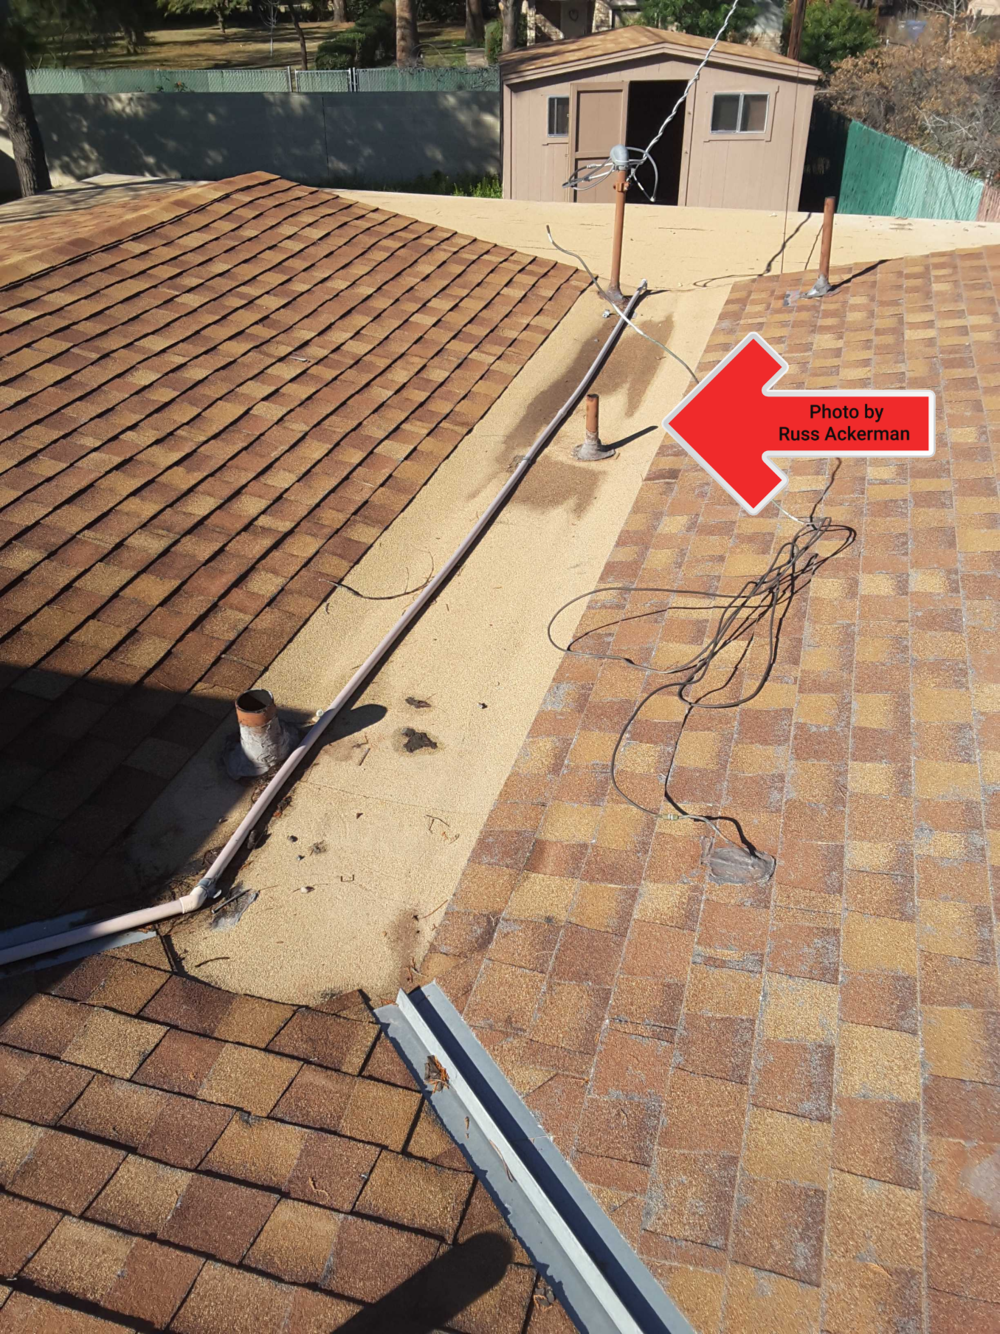 Dead roof valleys are notorious for leaking, catching debris and pooling water, regular maintenance is needed to reduce the chance of leakage.